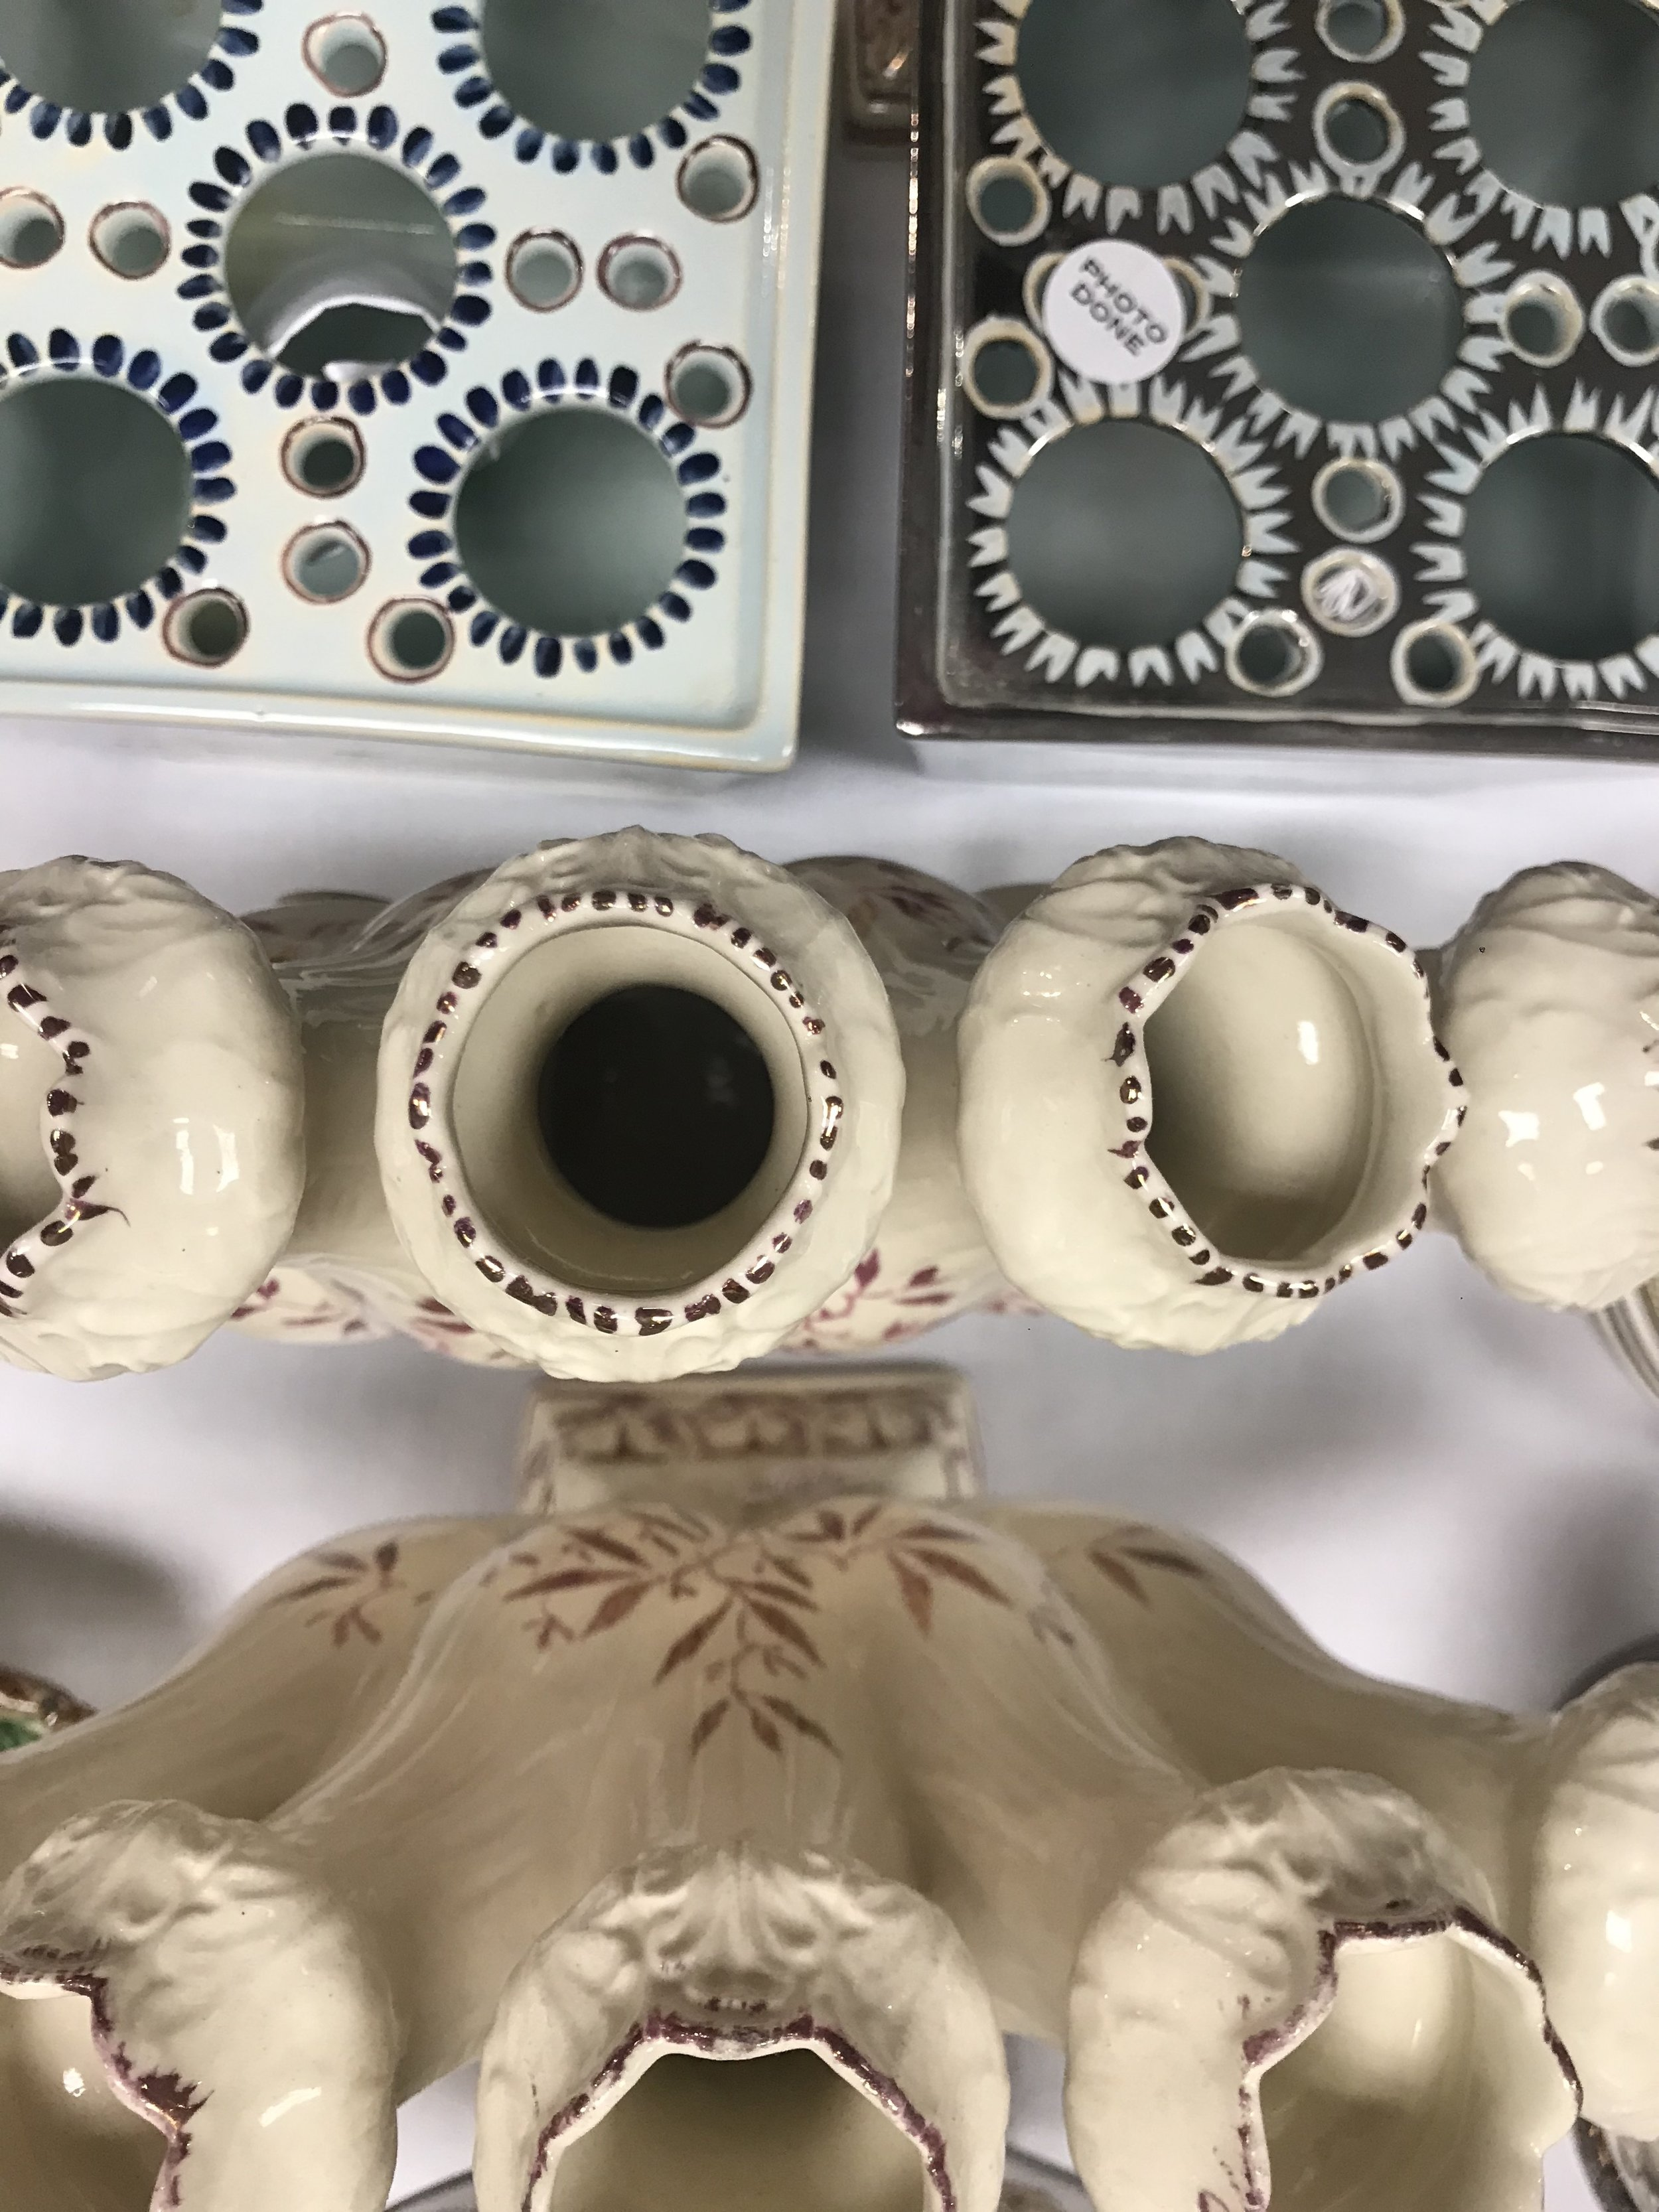 Up close and personal with some Palin Thorley Williamsburg Resoration Lustre Items.